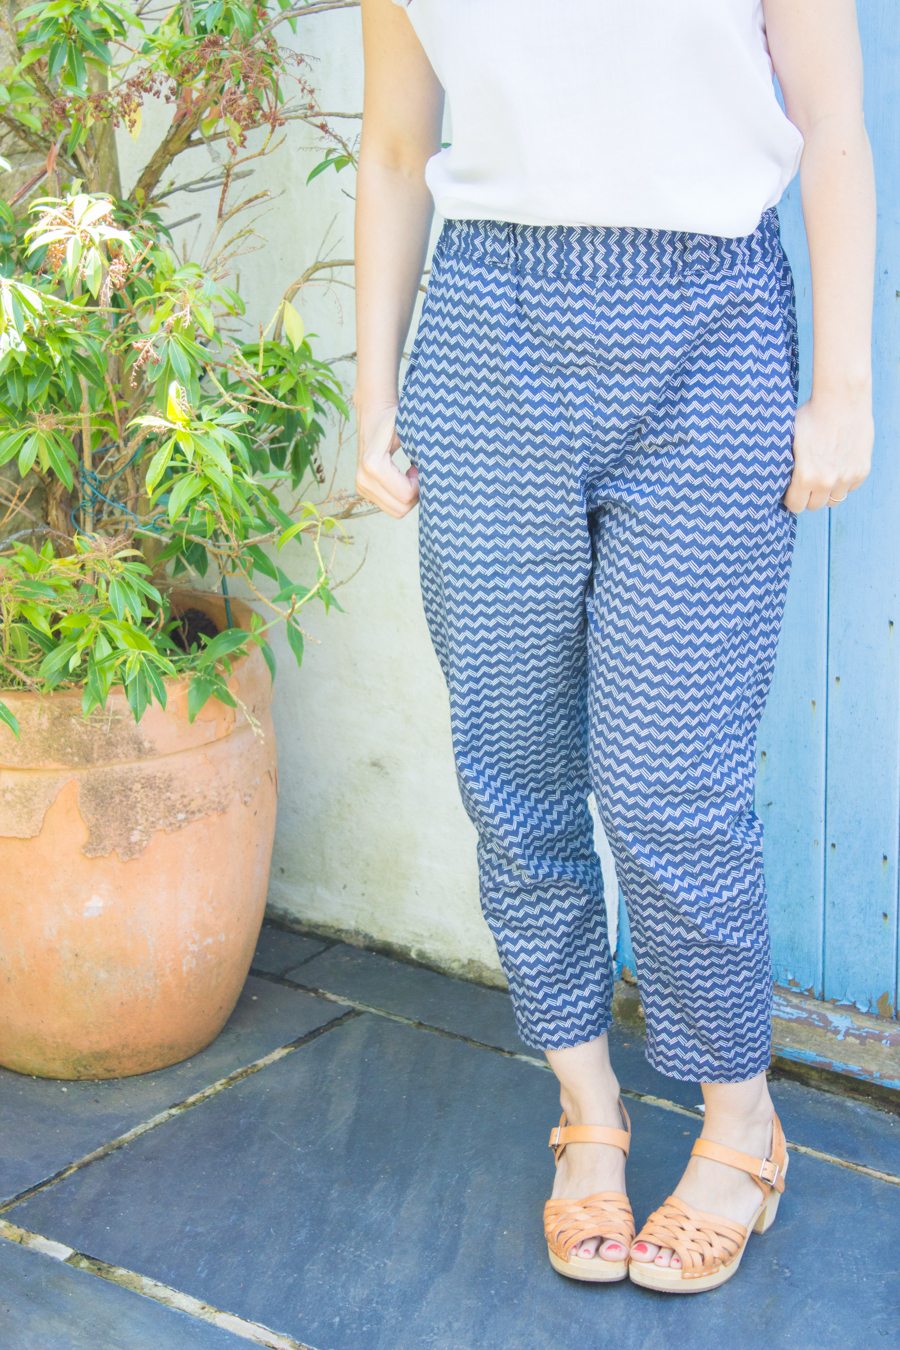 Sew Caroline Happy Home Art Gallery Fabrics Casual Sweet Clothes trousers